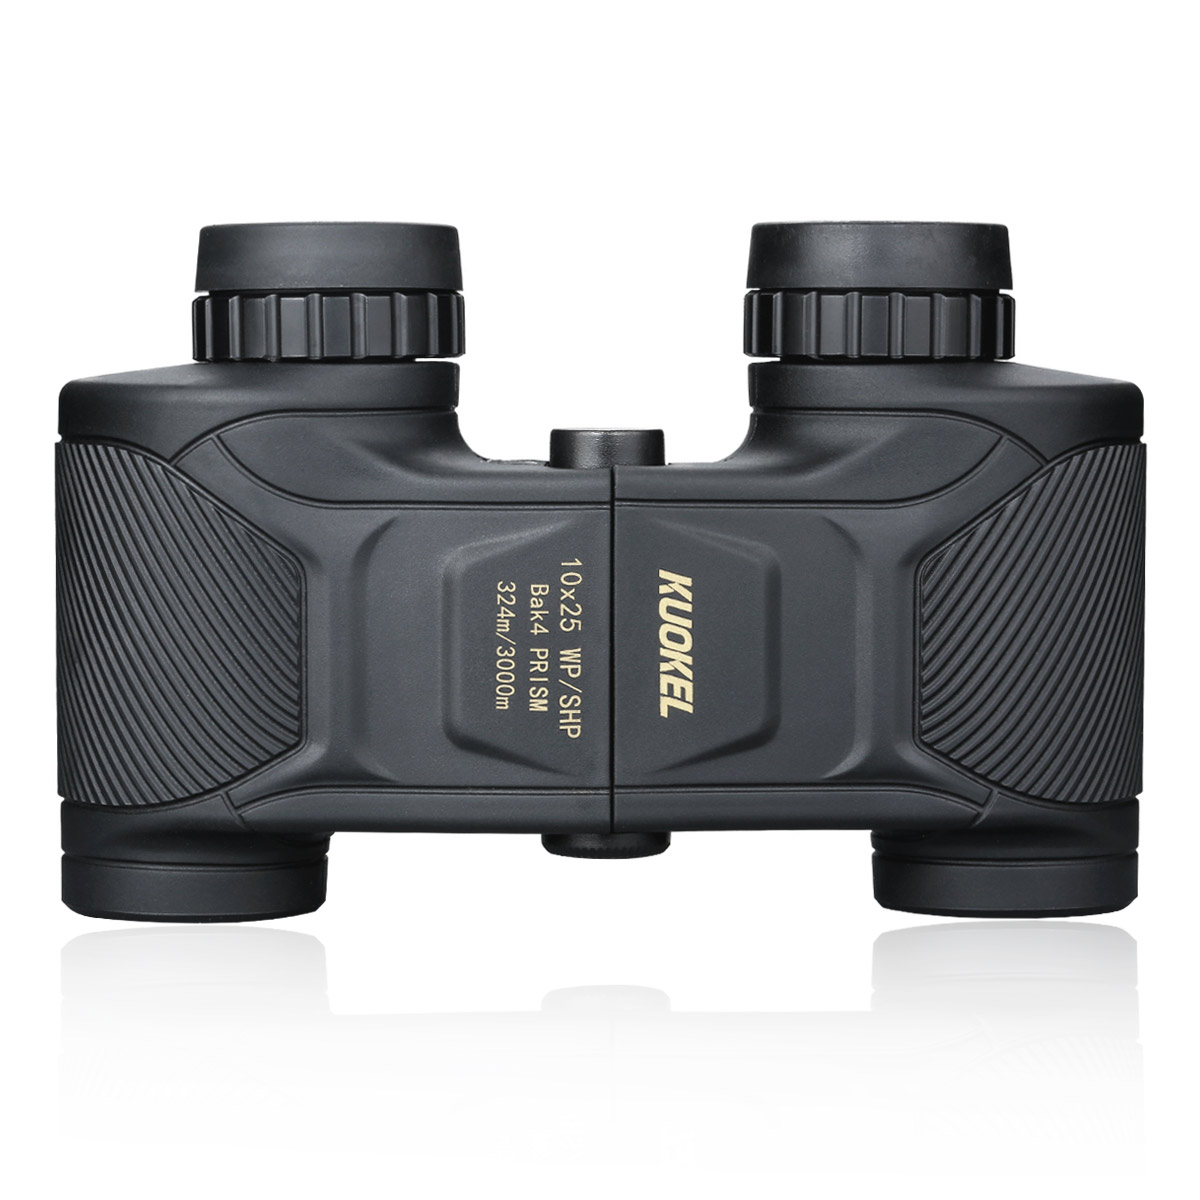 Kuokel Adults Folding Binoculars Telescope 10x25 324/3000M BAK4 Ultra-Vision Compact for Bird Watching Kids Chidren Gift Sport Game Concerts Waterproof